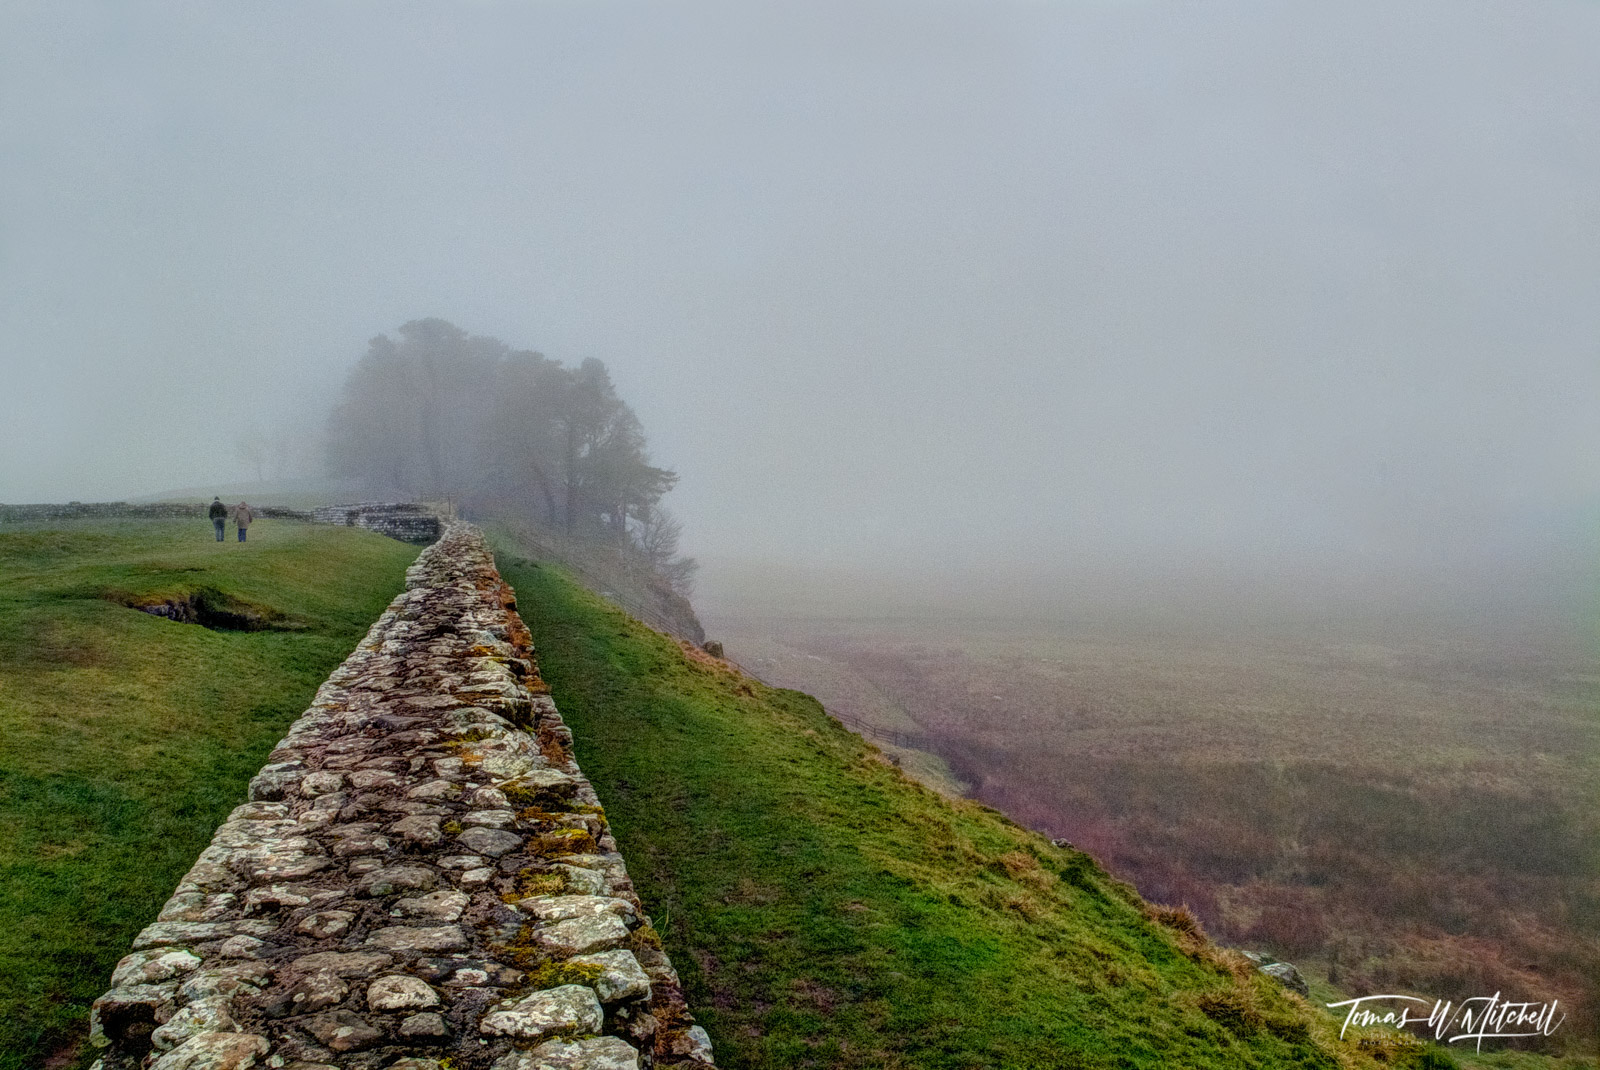 fine art, museum grade, prints, photographing, hadrian's wall, england, romans, stormy, color, wall, muted, walkers, tree, distance, photo